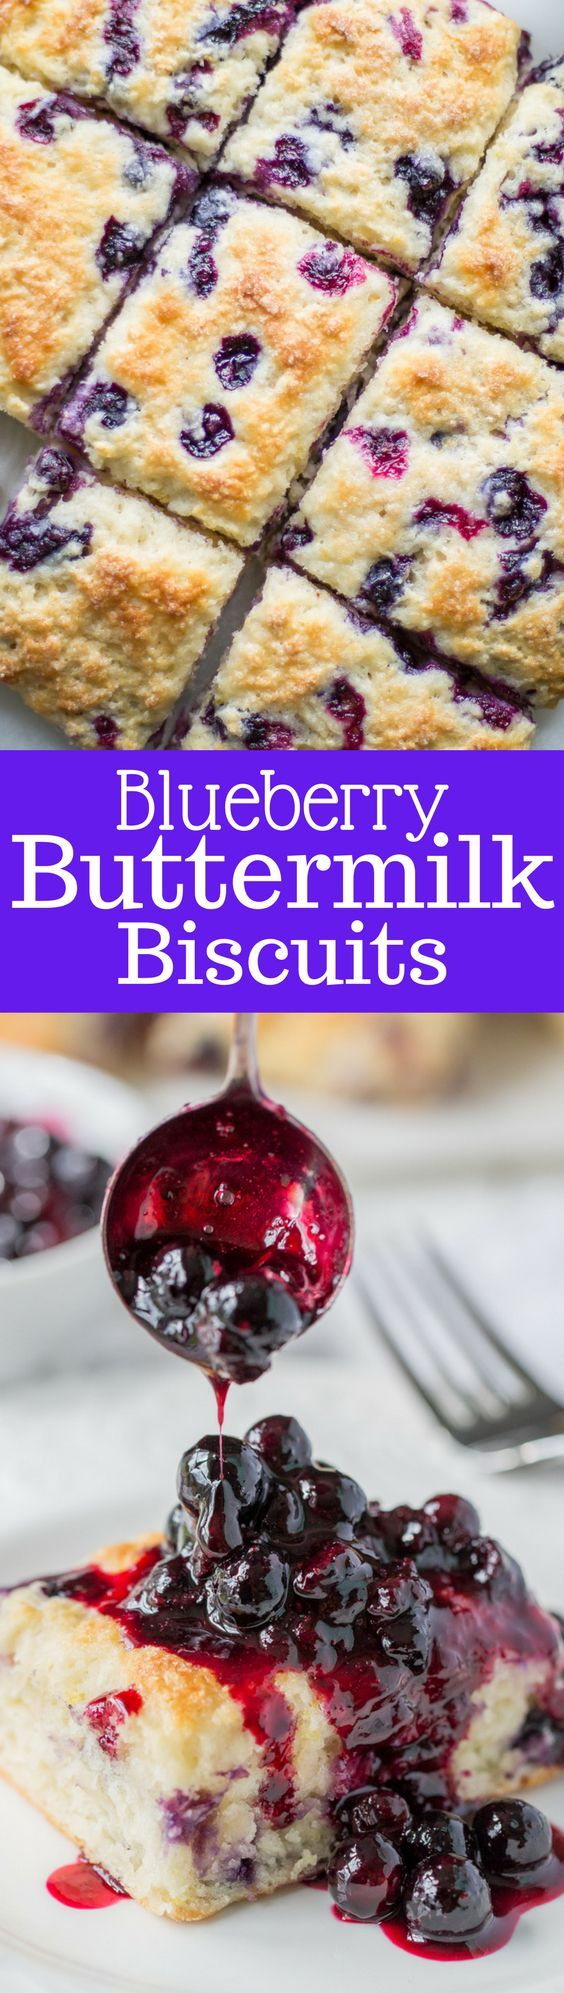 Blueberry Buttermilk Biscuits with a warm Blueberry Sauce ~ from www.savingdessert.com